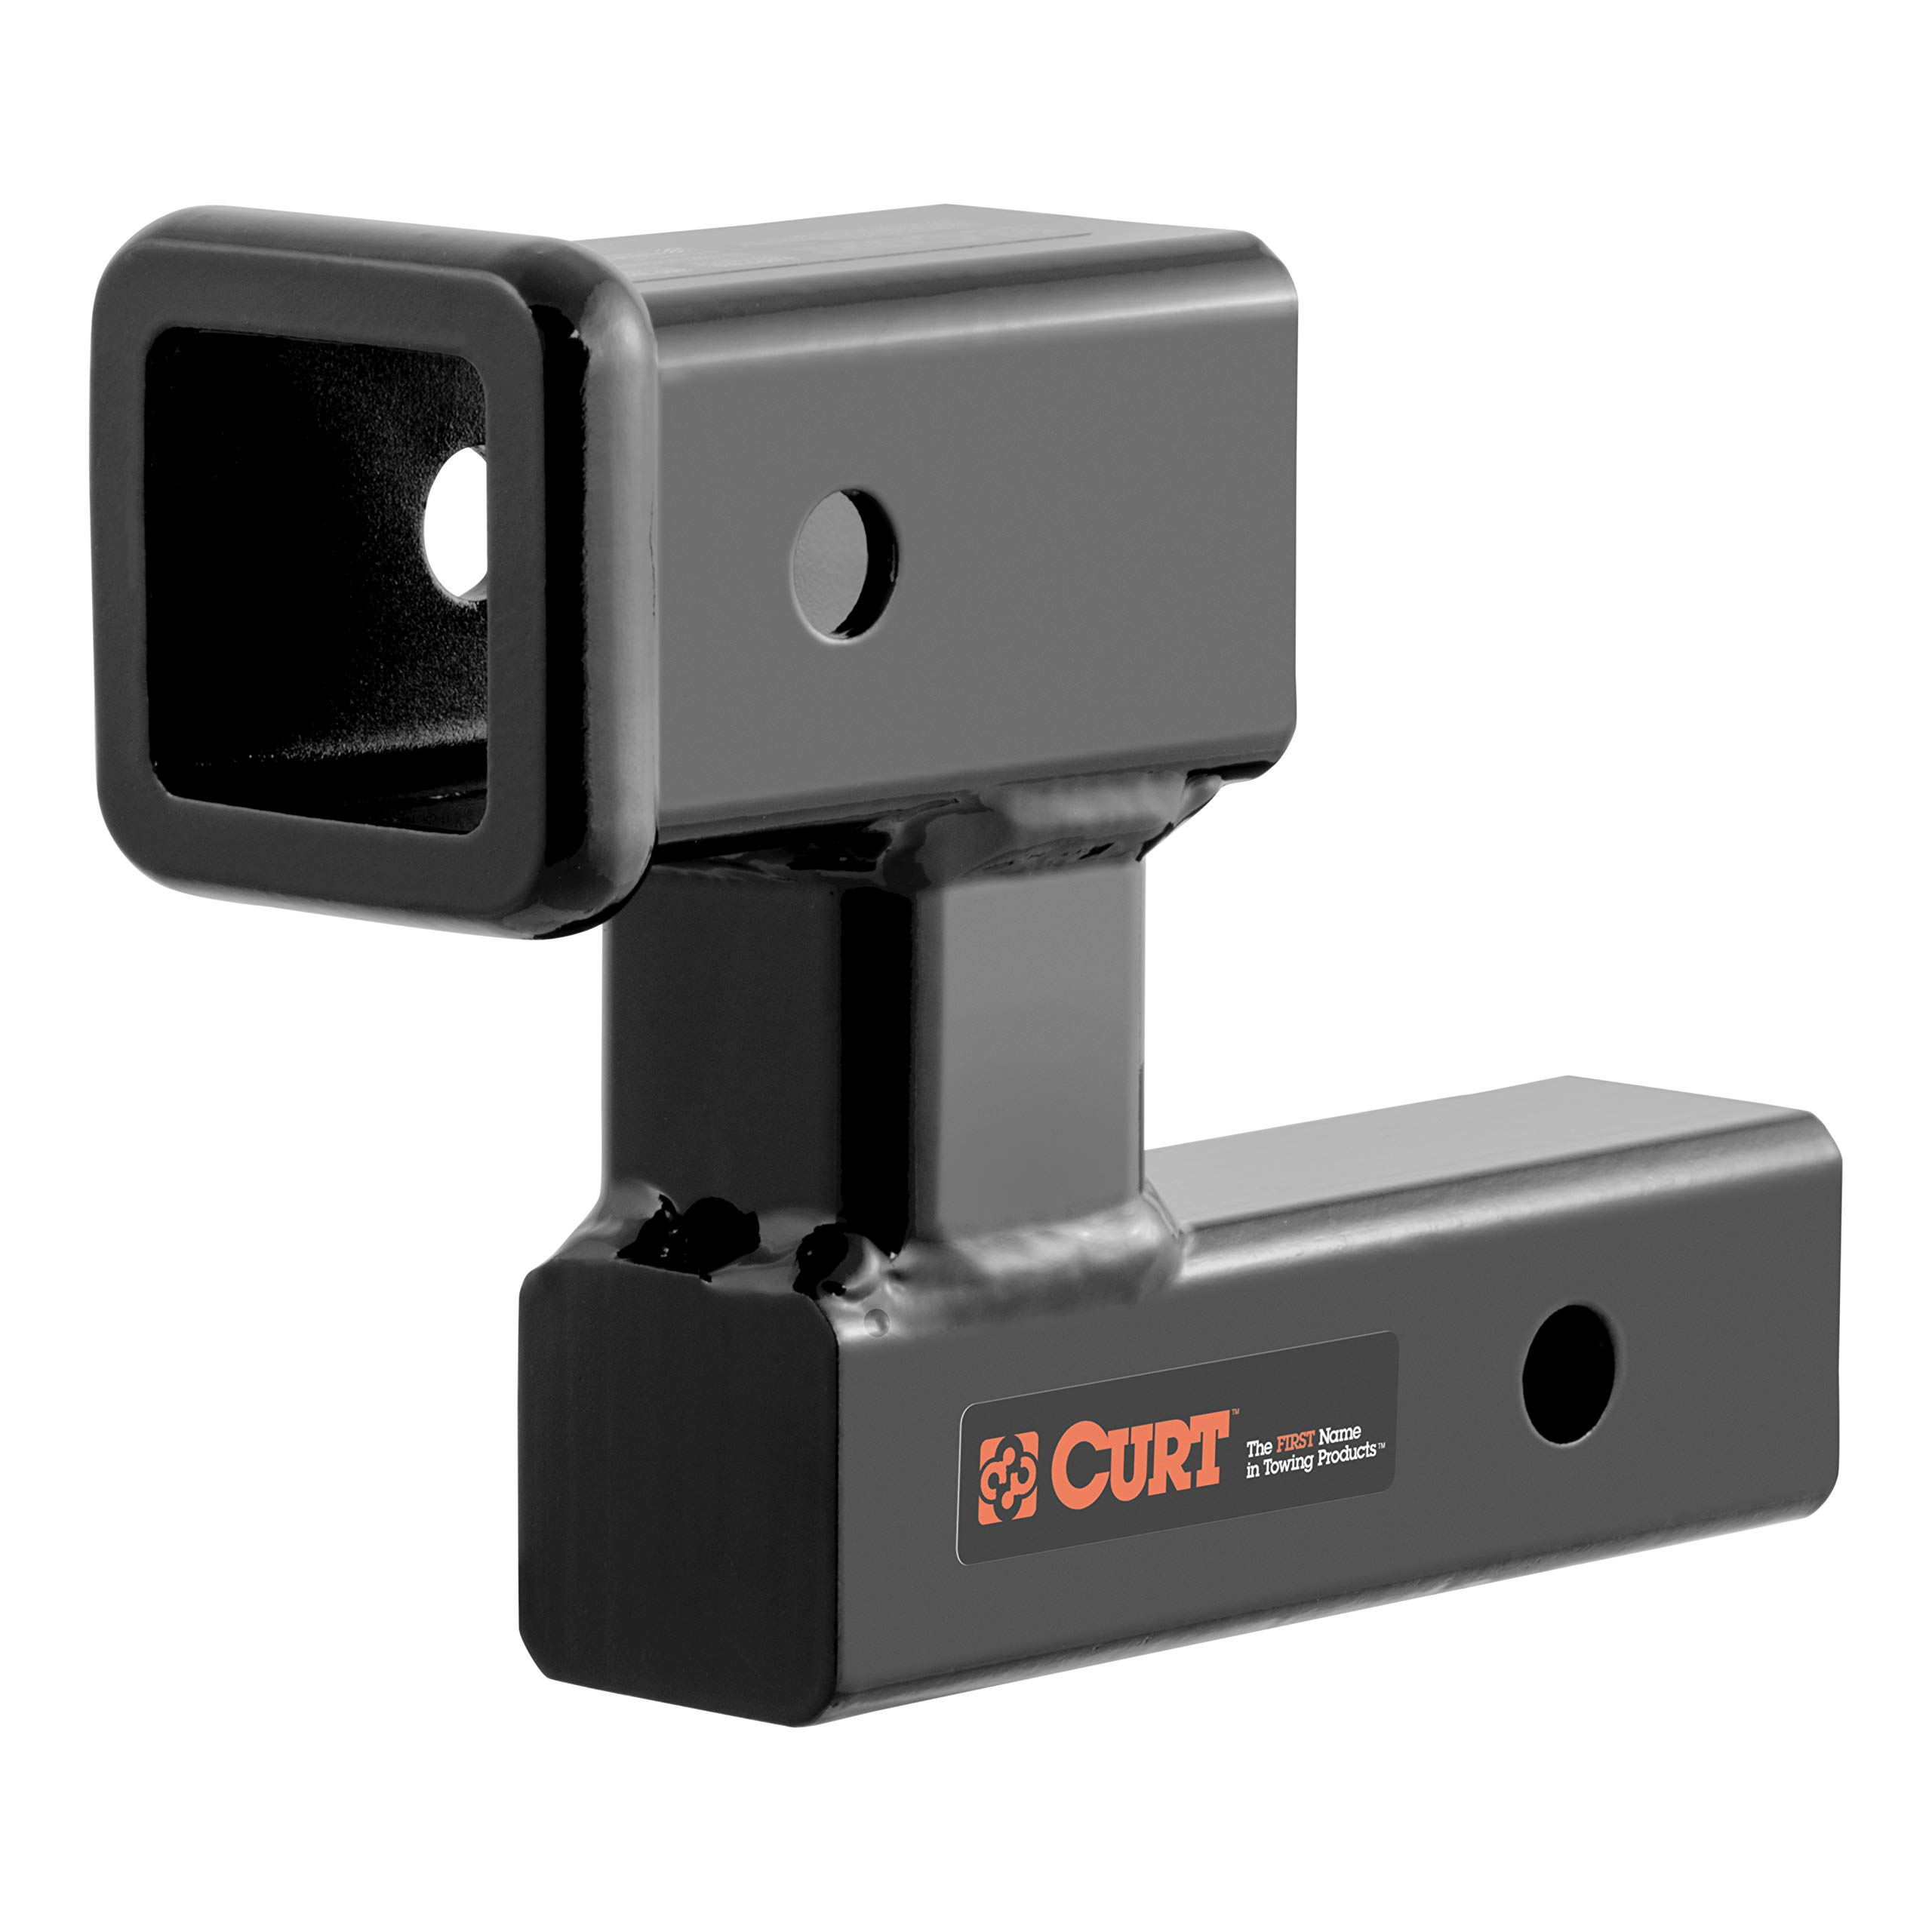 CURT 45794 Raised Trailer Hitch Extender, Fits 2-Inch Receiver, Extends Receiver 5-1/4 Inches, 4-1/4-Inch Rise by CURT